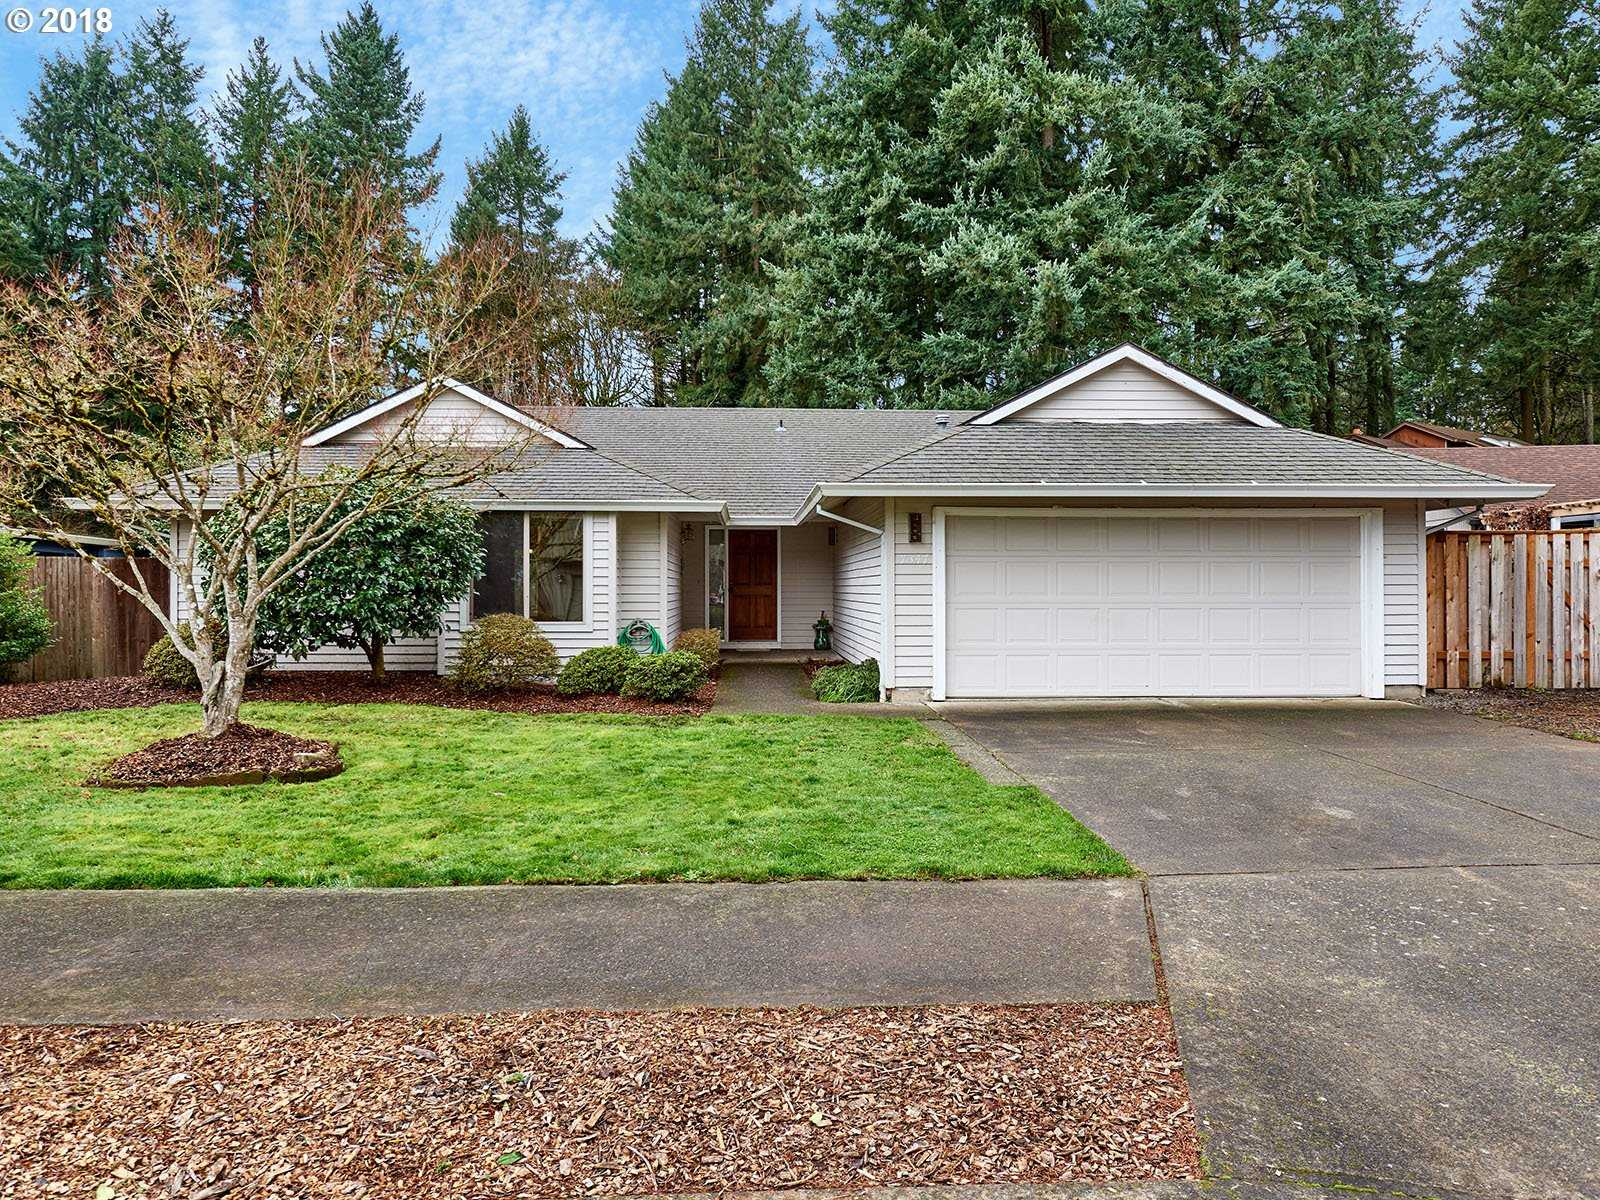 $389,900 - 3Br/2Ba -  for Sale in Tualatin